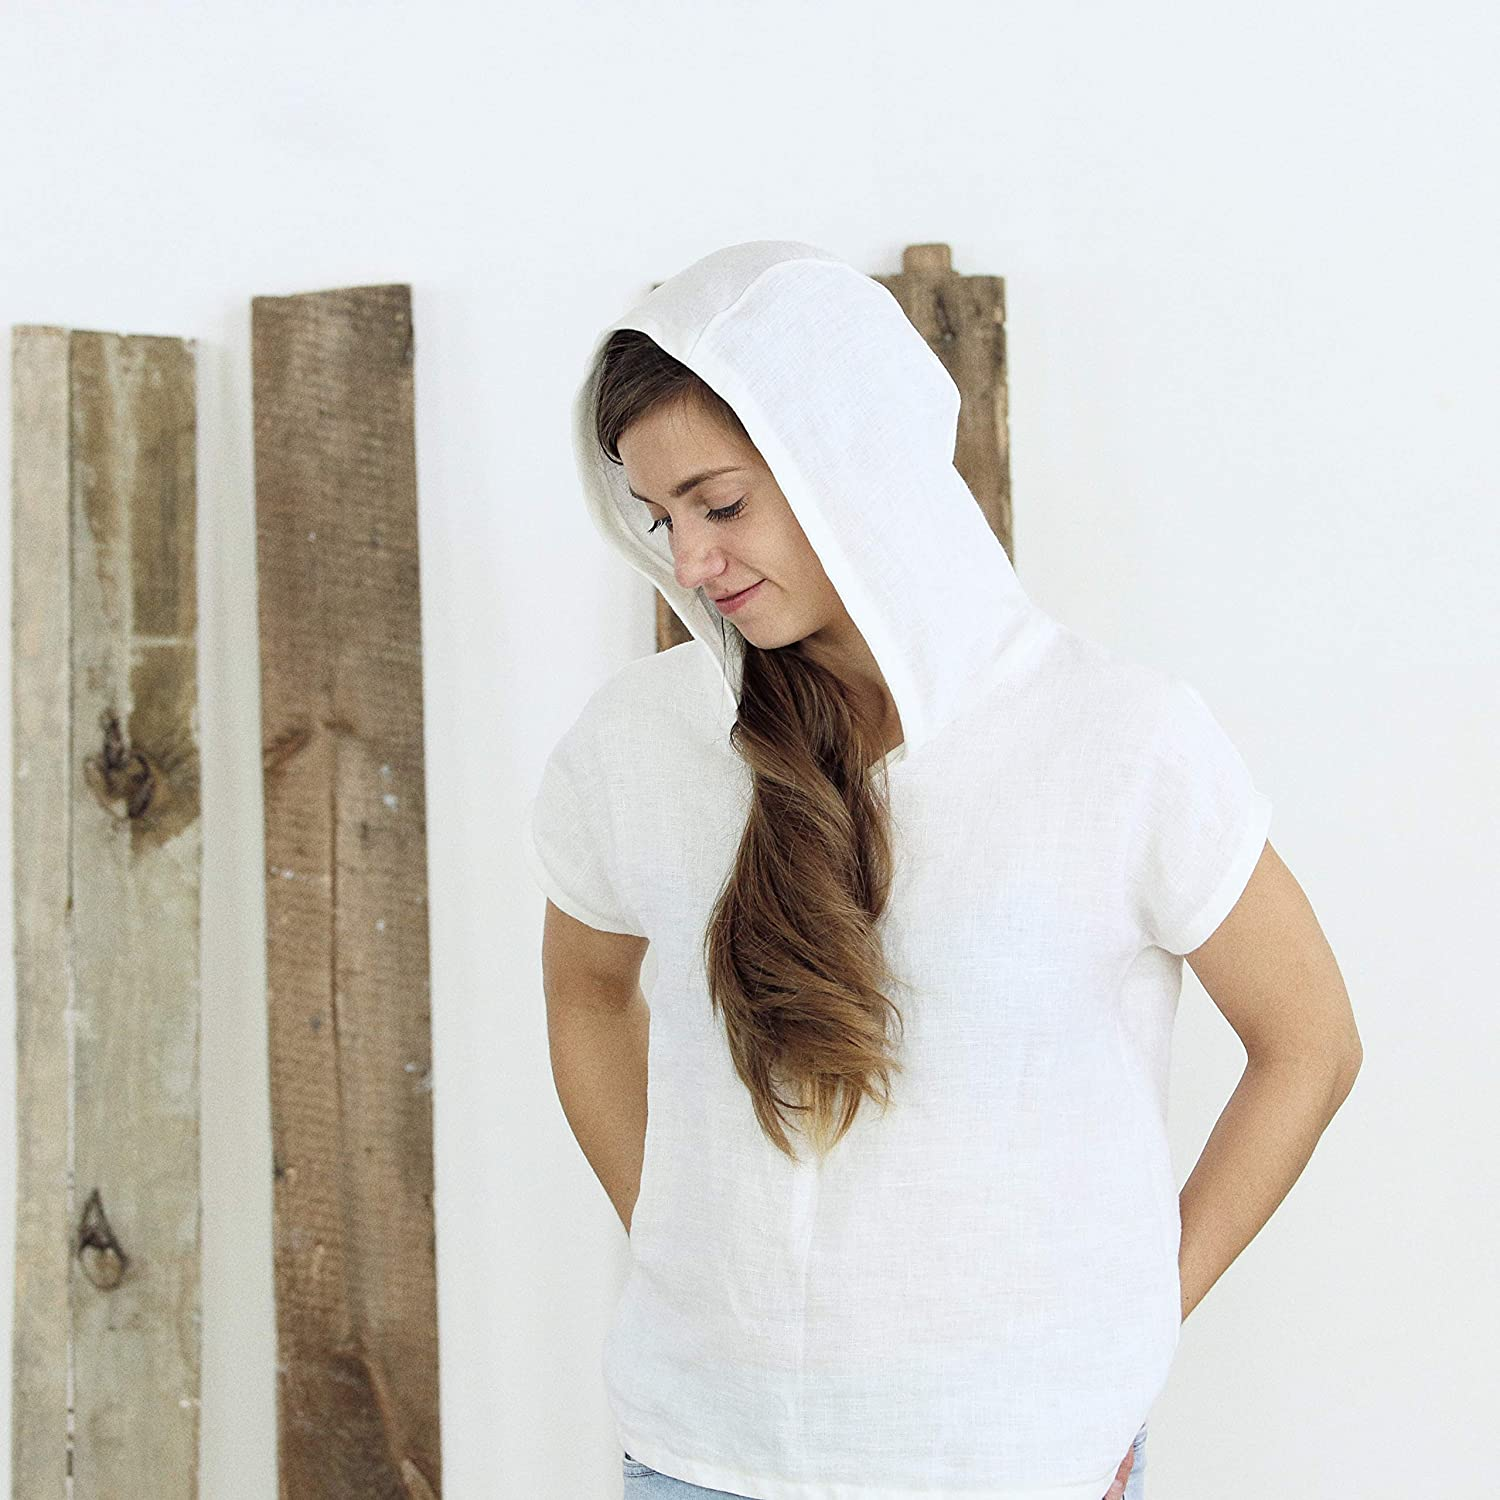 Soft Washed White Linen Shirt Linen Top For Women Linen Tunic Top Ready To Ship  Oversized Linen Top In Taupe Grey